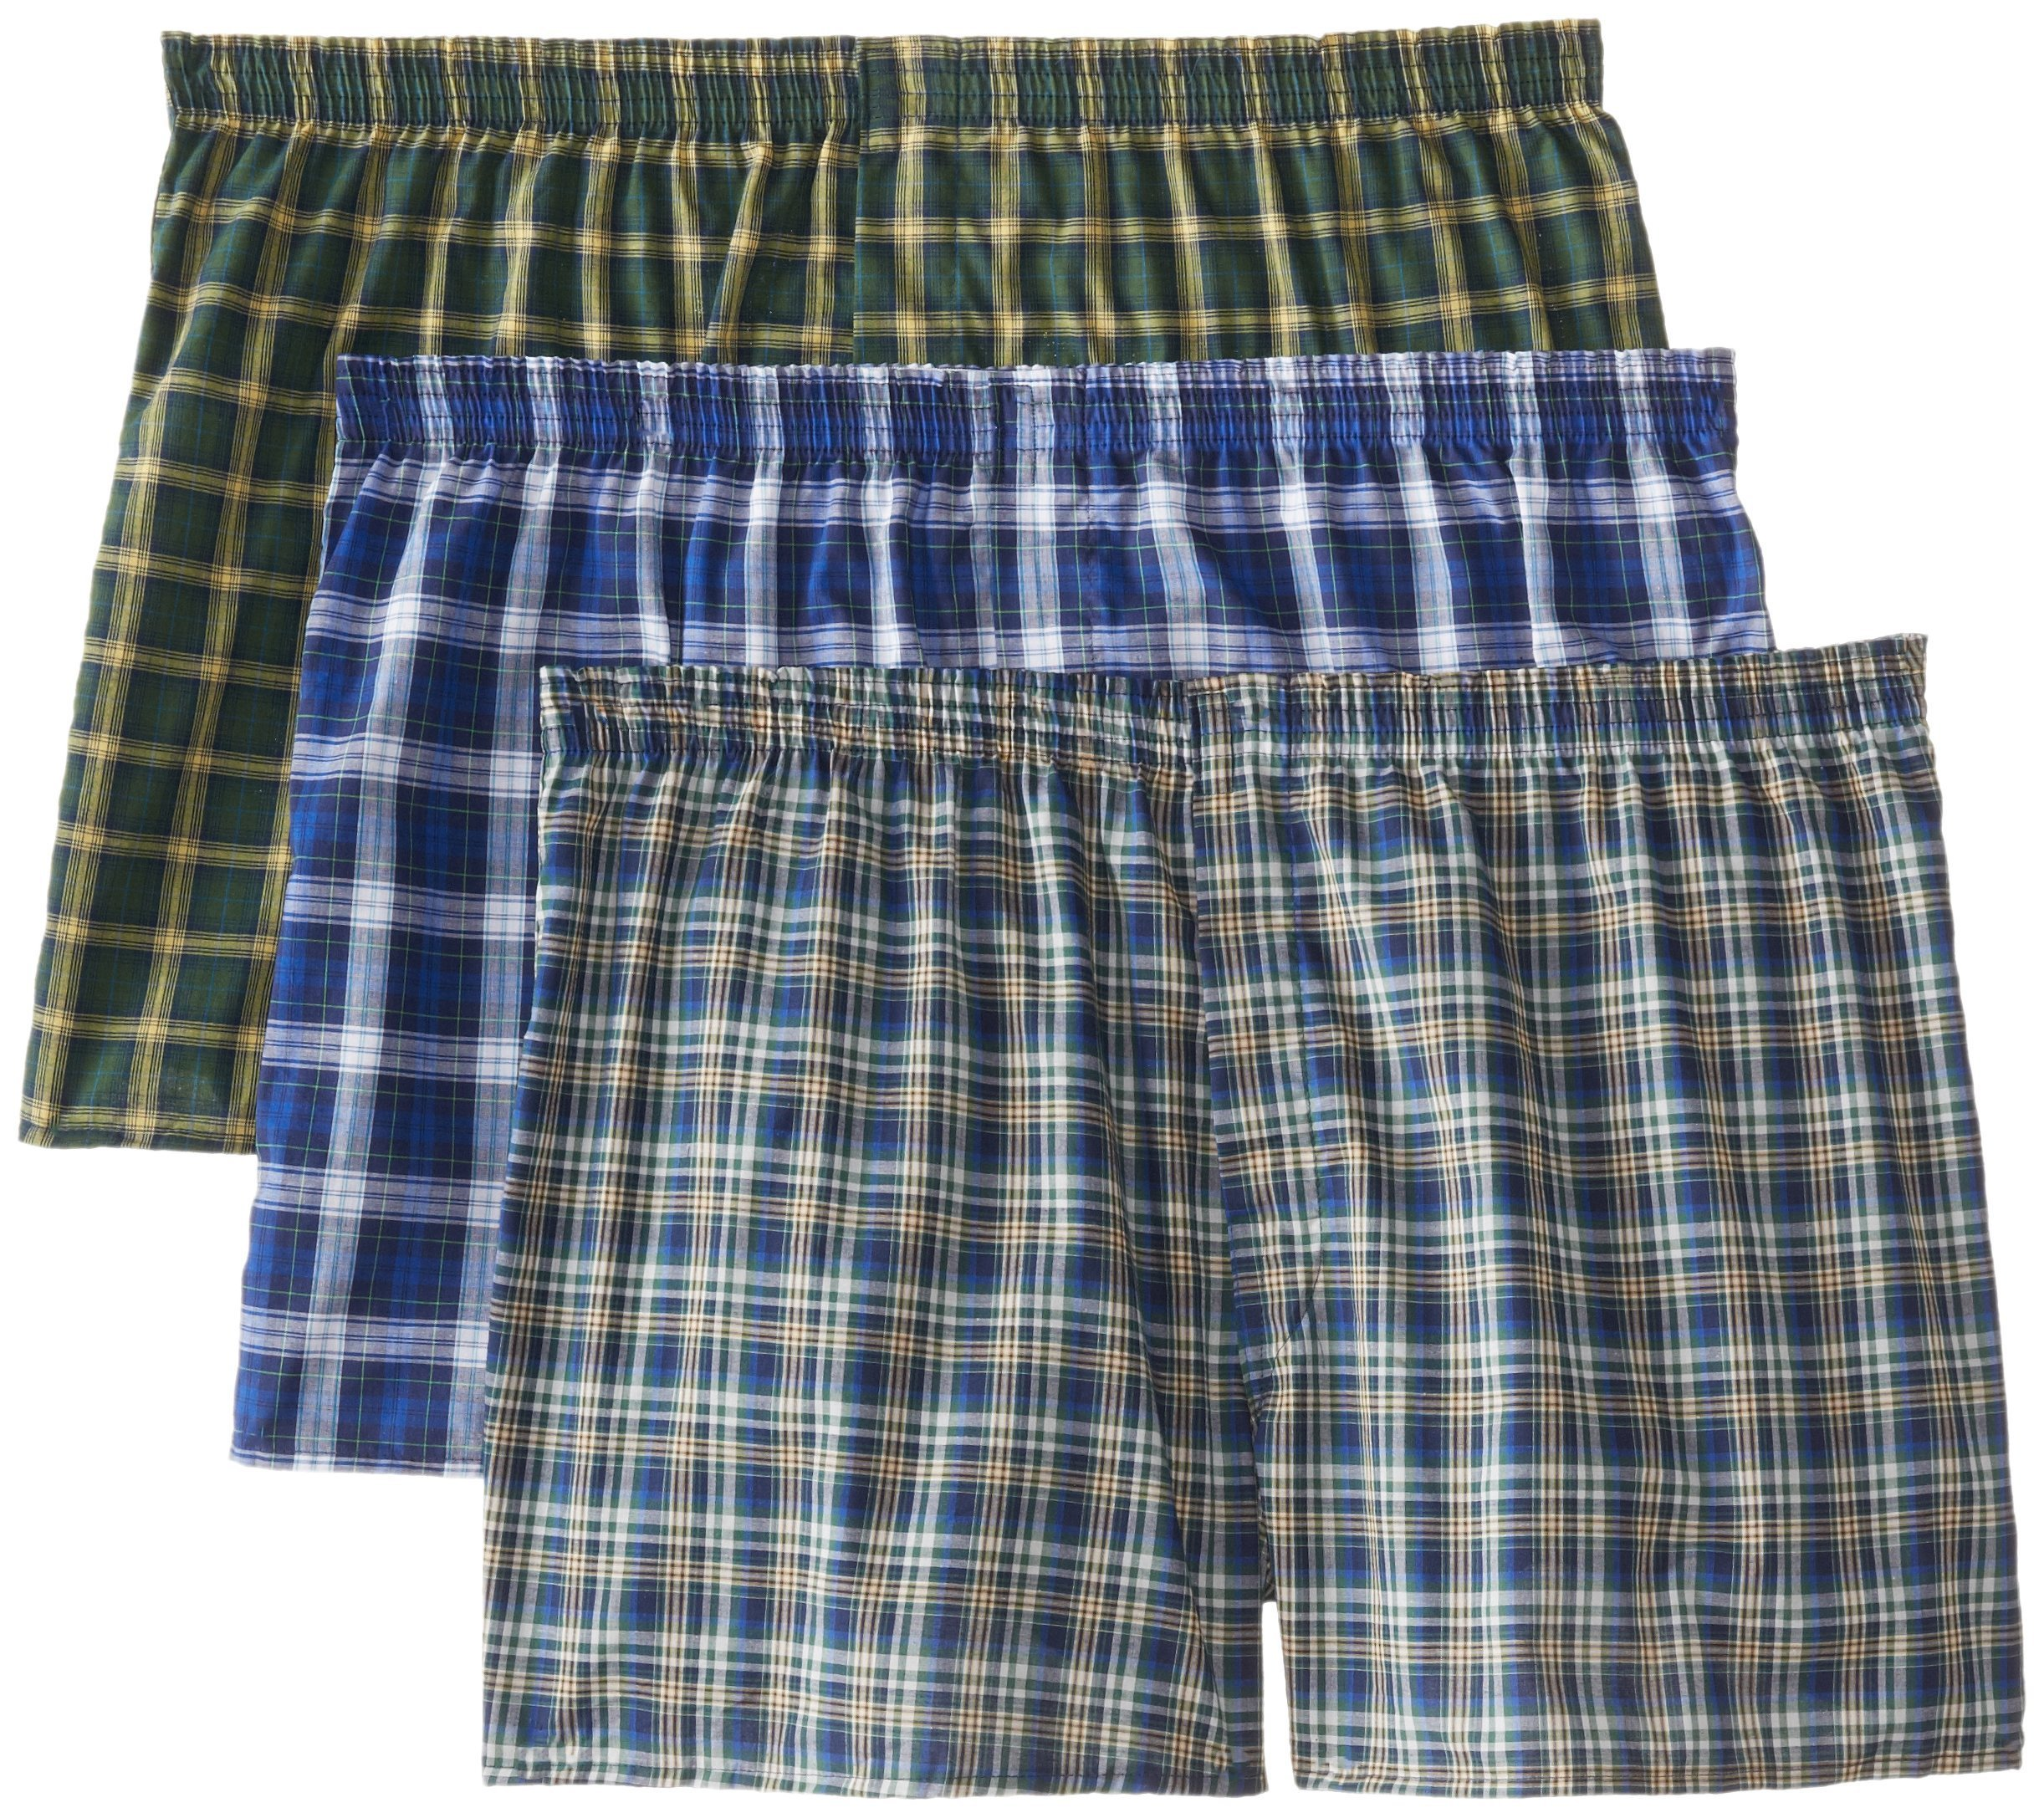 Fruit of the Loom Men's BigMan Woven Boxer, Assorted, 2XB(Pack of 3) by Fruit of the Loom